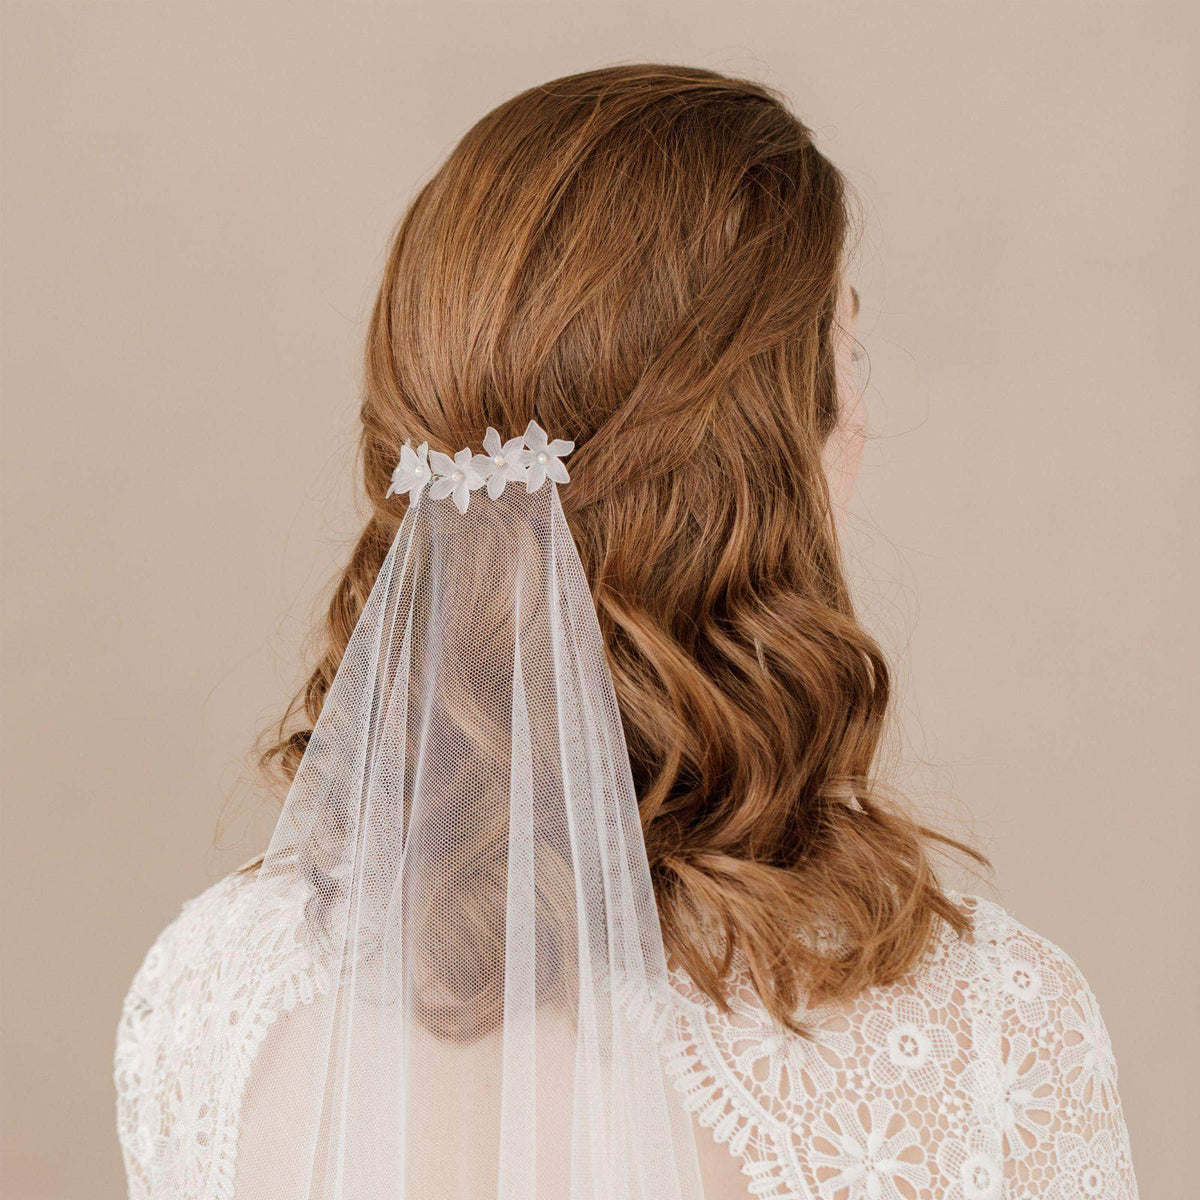 Rose gold floral pearl hair centrepiece - 'Elsa'